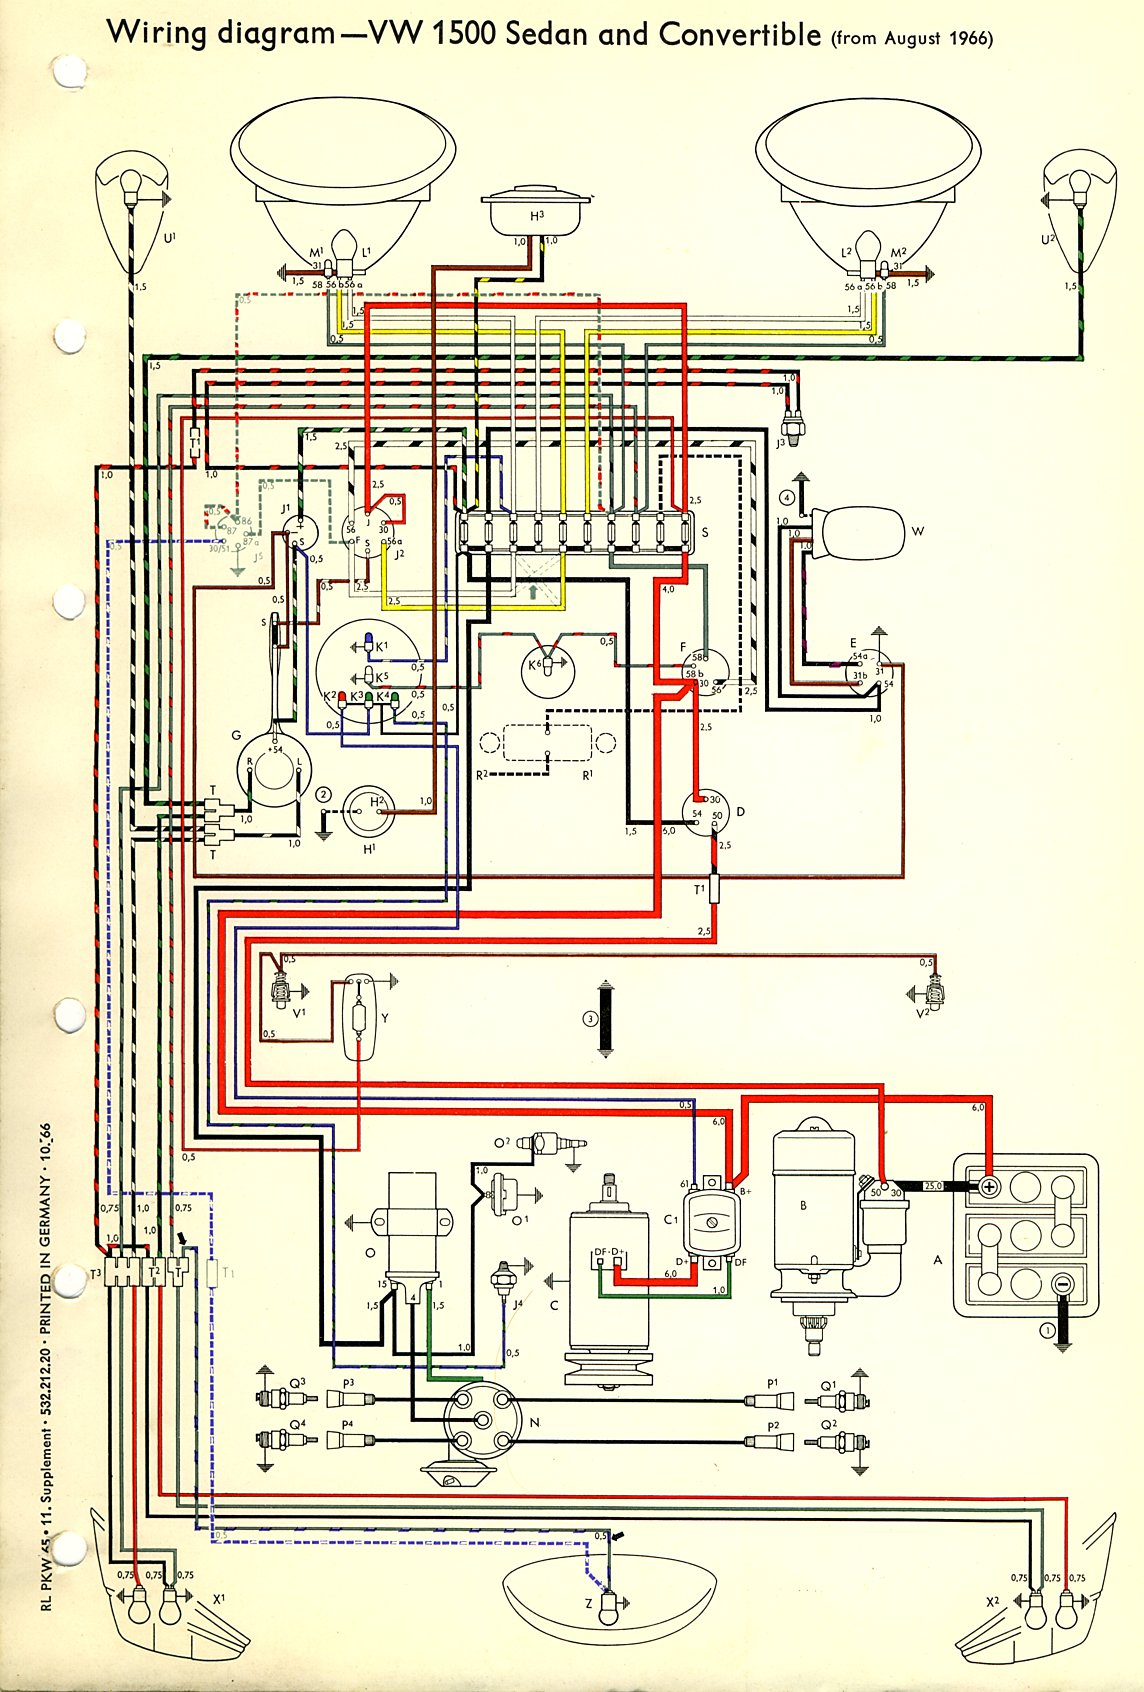 thesamba com type 1 wiring diagrams rh thesamba com 1977 VW Bus Wiring Diagram 1968 Volkswagen Wiring Schematic